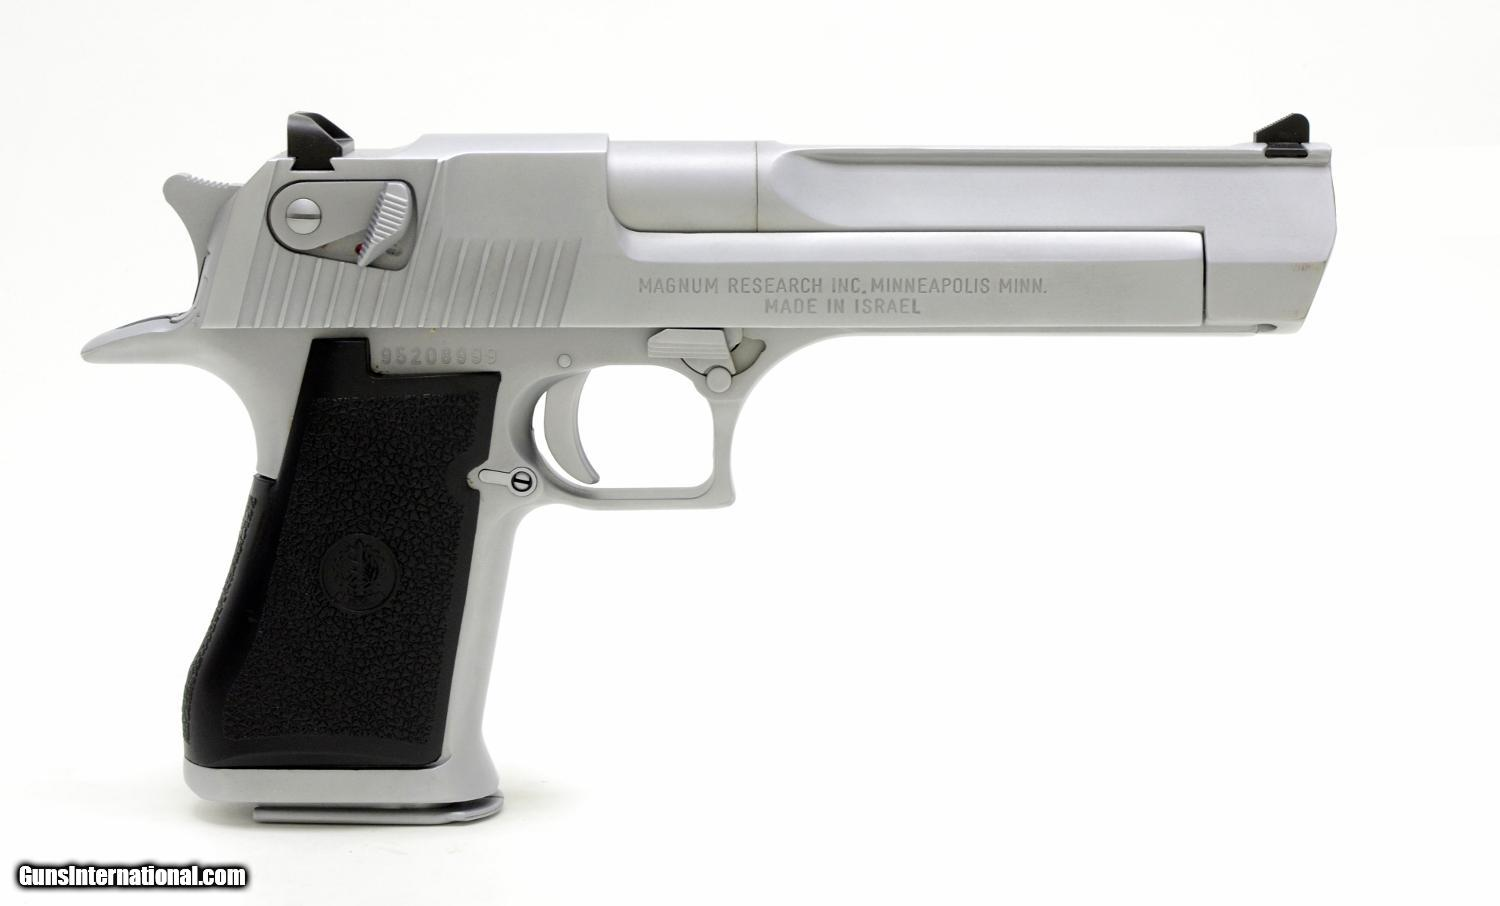 desert eagle by magnum research 44 mag semi auto pistol new in box condition kf collection. Black Bedroom Furniture Sets. Home Design Ideas